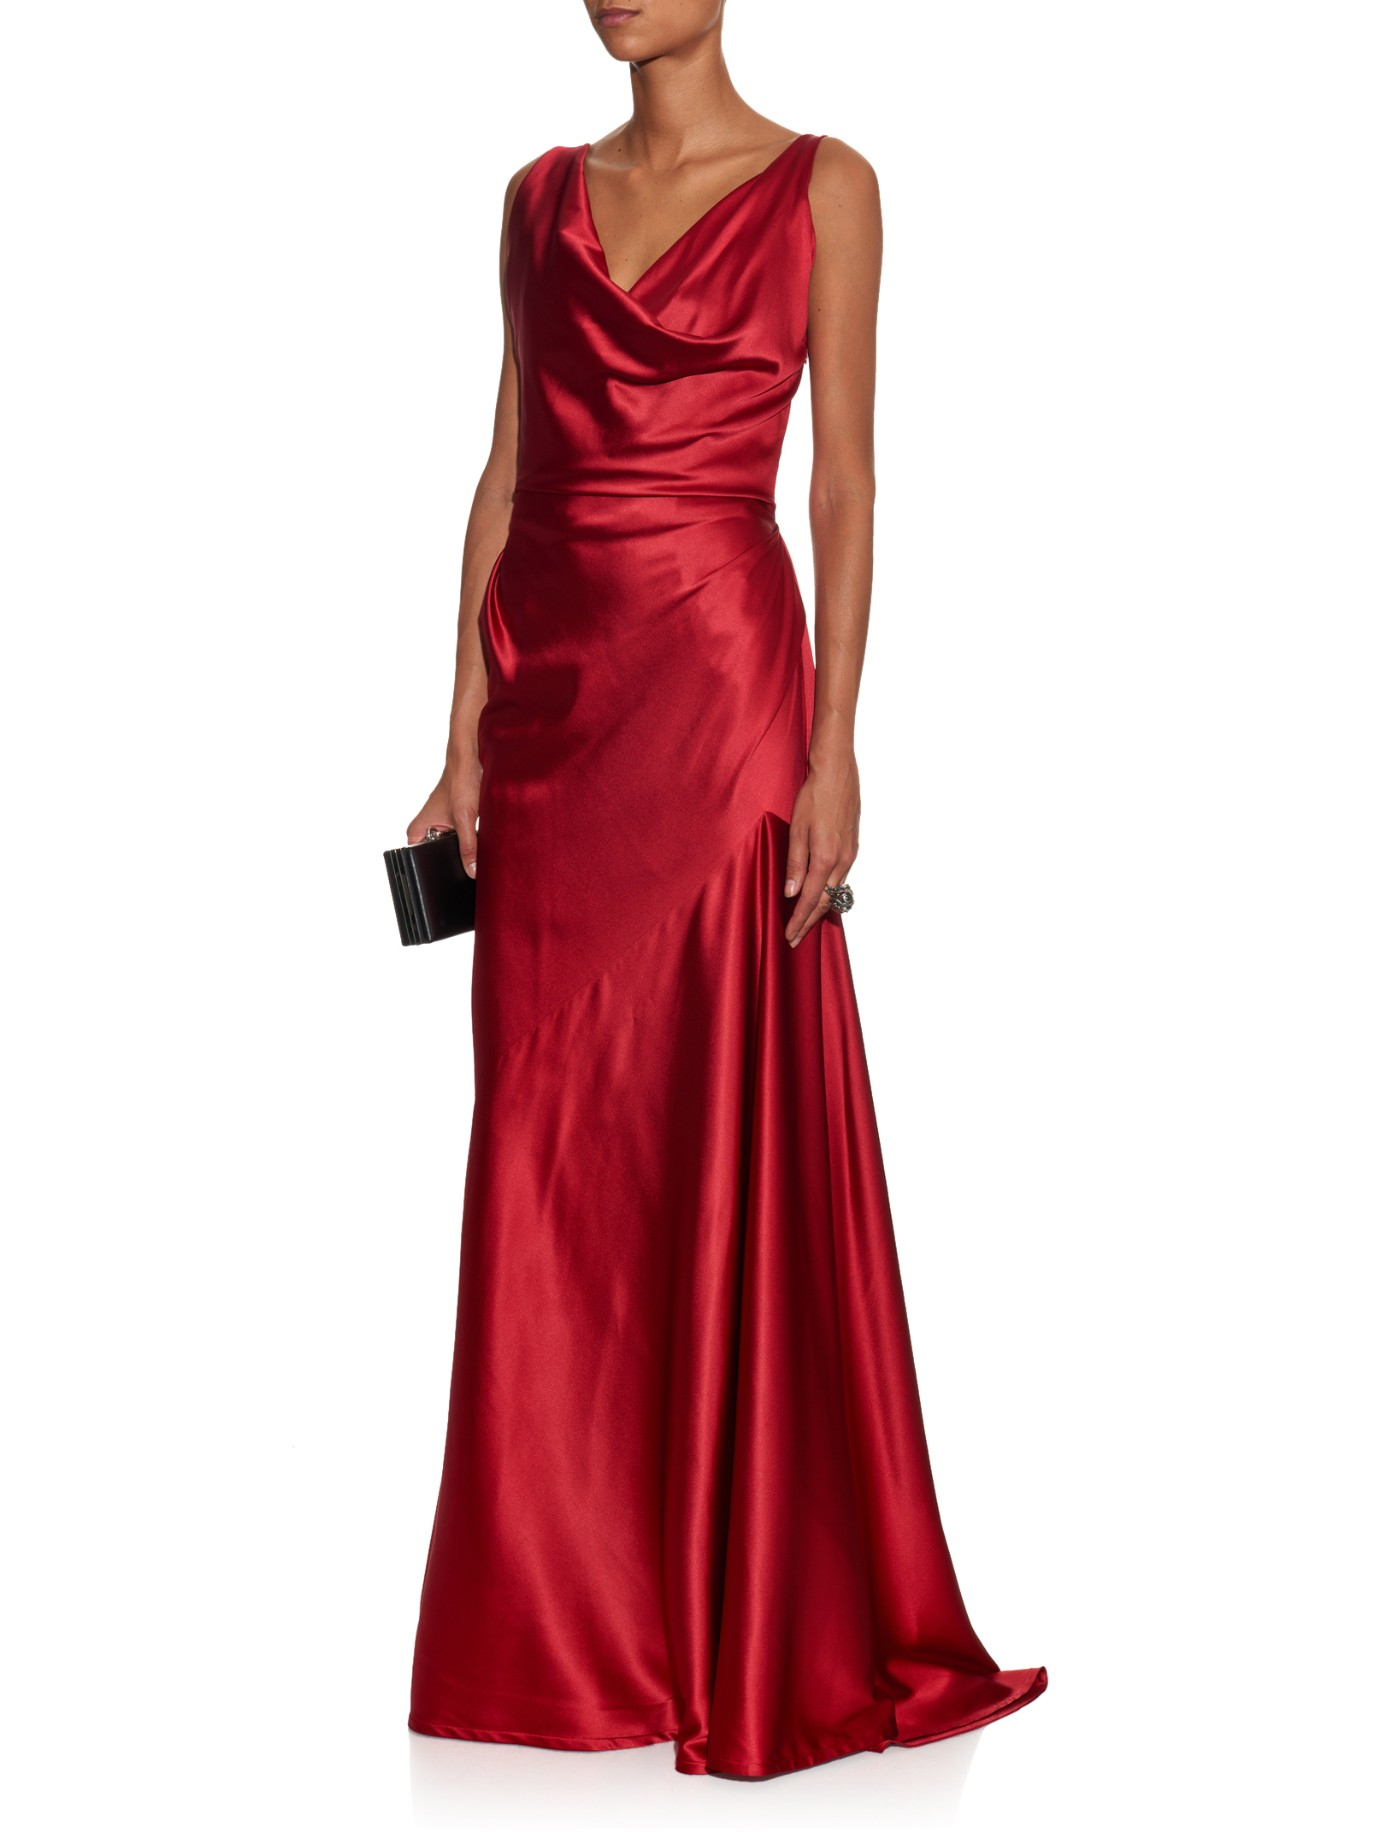 41c37c00eb1 Vivienne Westwood Red Label Amber Stretch-satin Gown in Red - Lyst